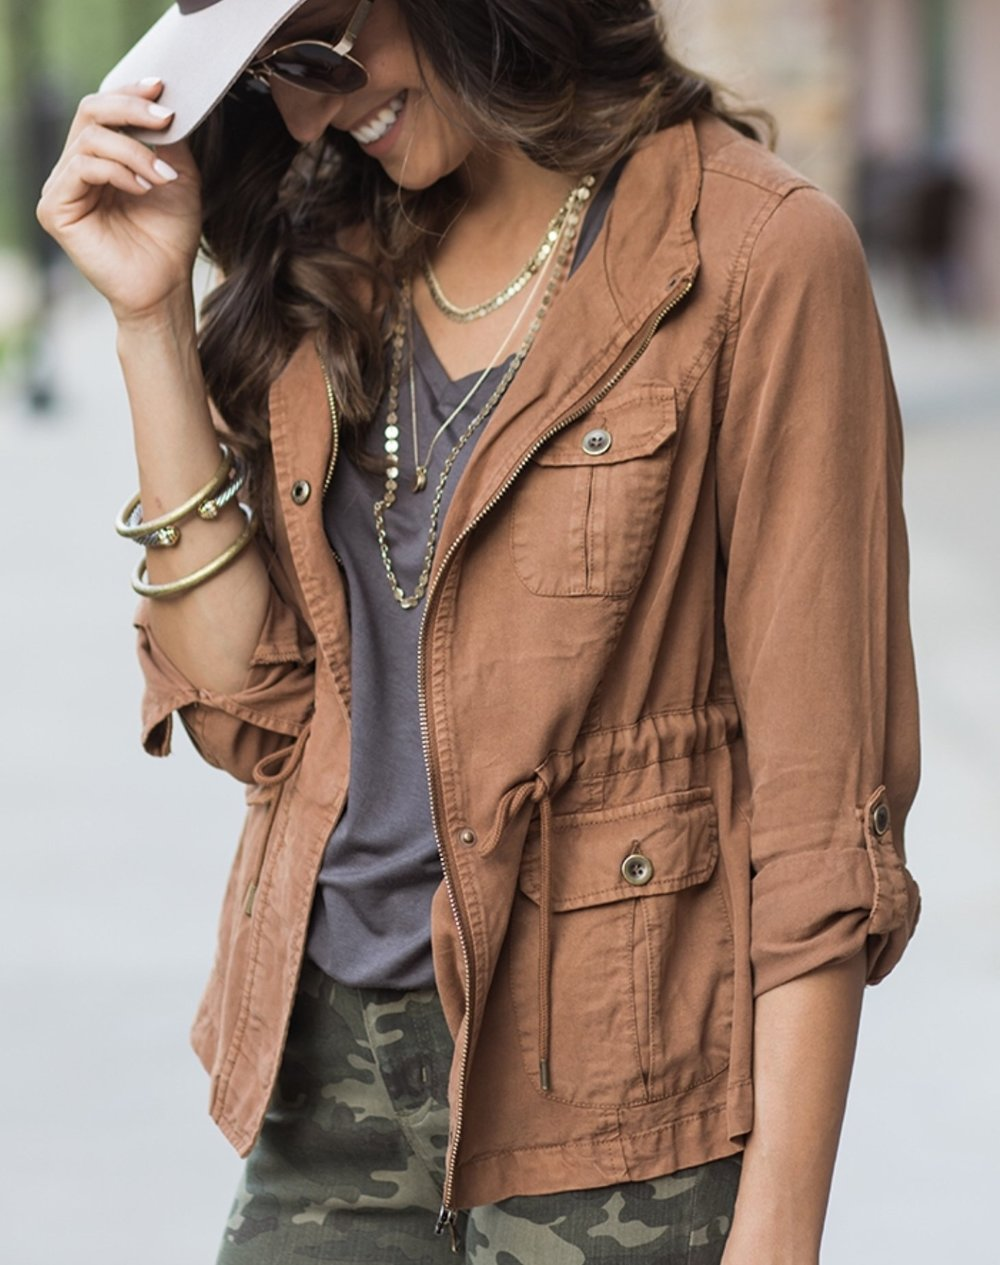 This cargo jacket from Elegance Restored is 1 of 4 different colors you can get it in!